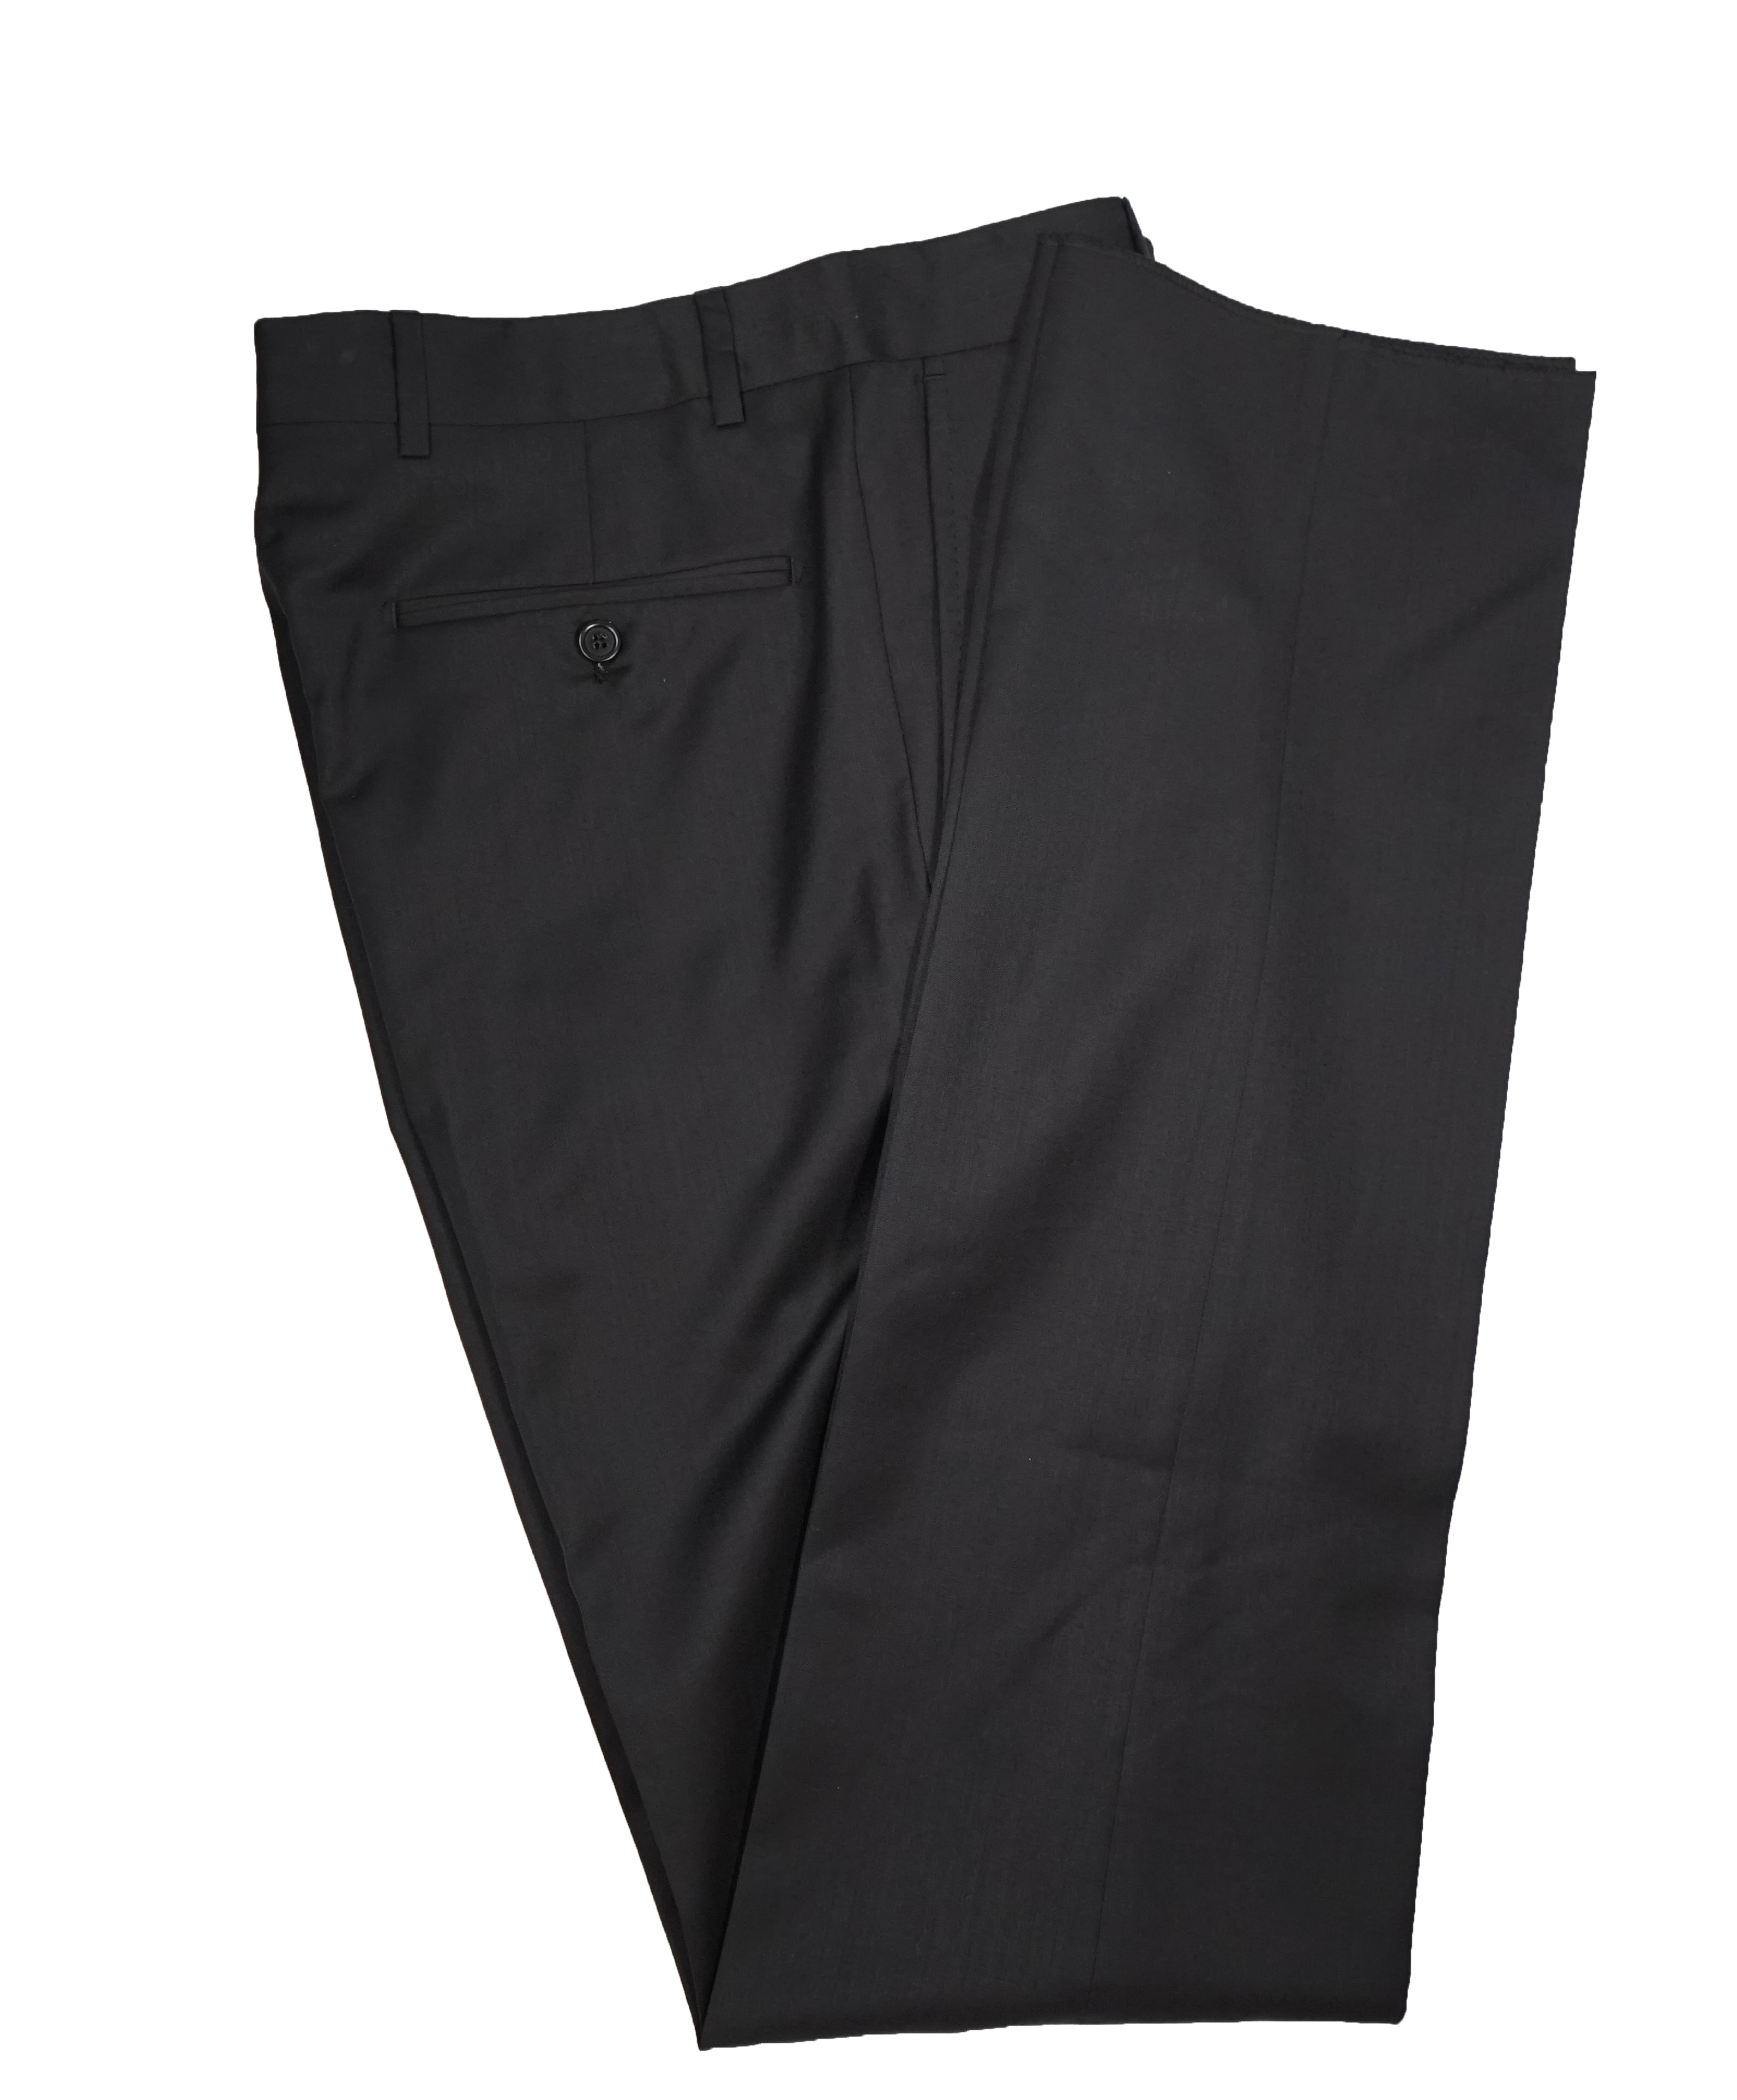 SAKS FIFTH AVENUE -  Solid Black Made In Italy Dress Pants - 36W